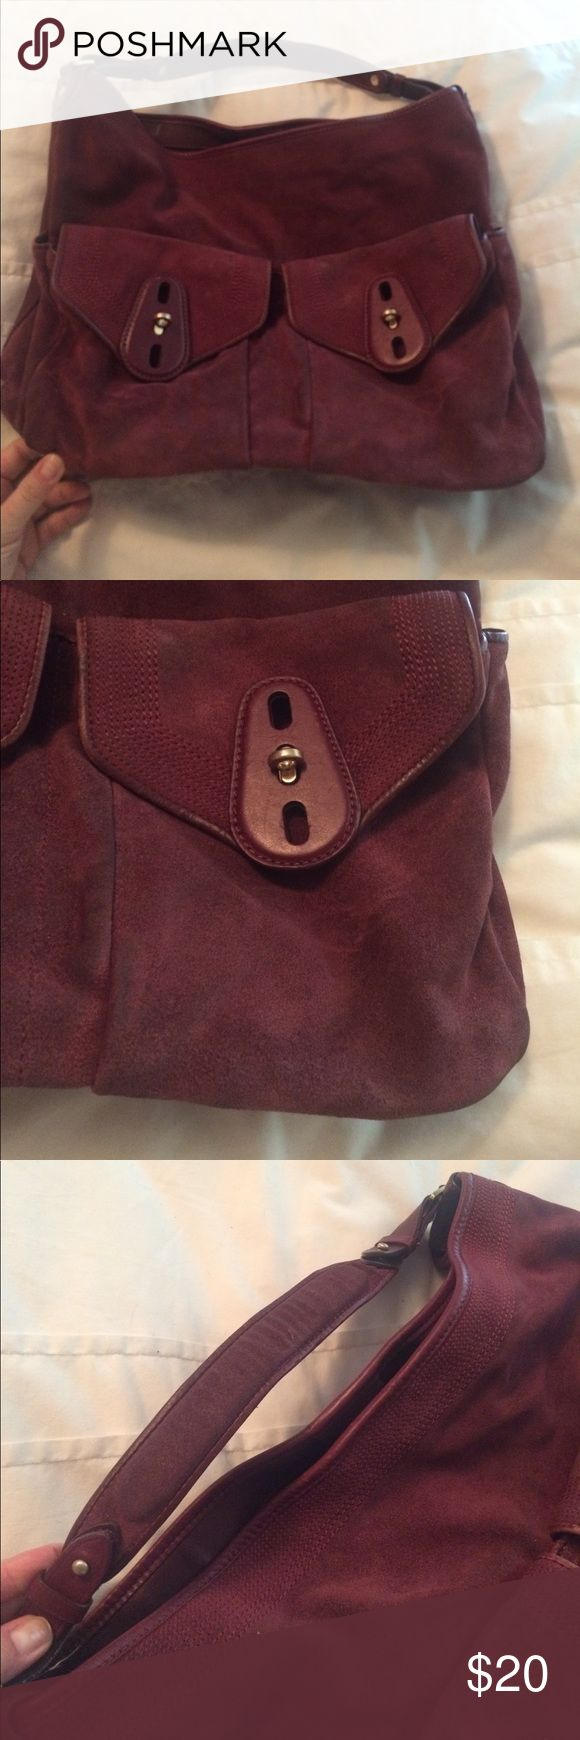 Cole haan large plum suede handbag Being offered is a large coke haan plum suede bag that has been used but still has a lot of life left in it the bag needs to be dry cleaned it has soiling on the edges of the bag from brushing up against stuff no rips or tears I can see. Bag is large it measures 17x12x6.5 front pockets open up and fit a ton. Smoke free home Cole Haan Bags Shoulder Bags